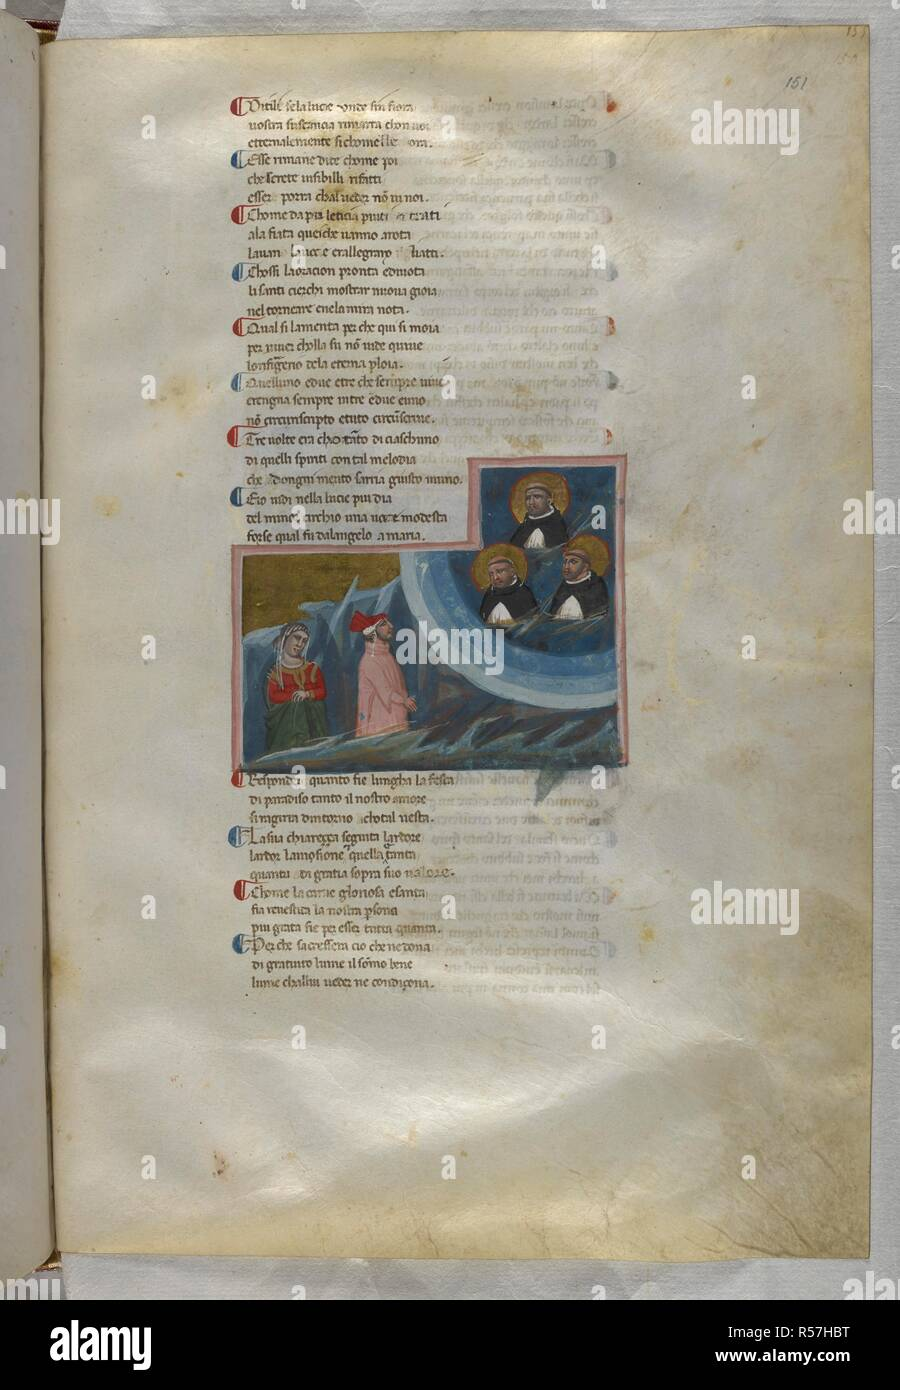 Paradiso : Dante addressing the souls of three Dominicans. Dante Alighieri, Divina Commedia ( The Divine Comedy ), with a commentary in Latin. 1st half of the 14th century. Source: Egerton 943, f.151. Language: Italian, Latin. - Stock Image